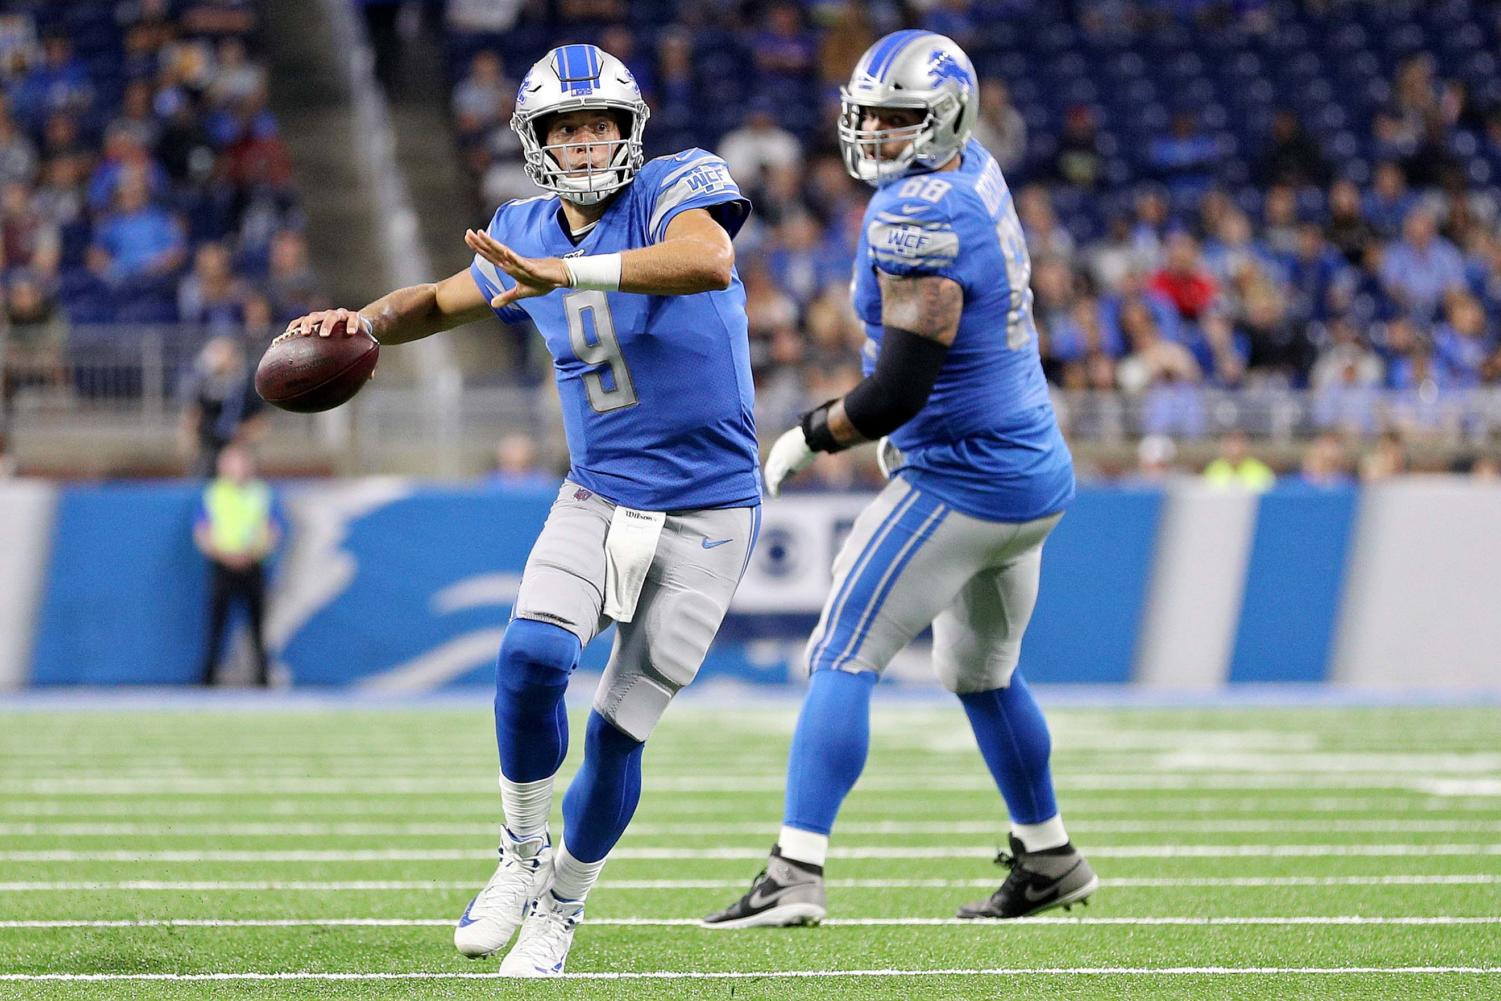 Detroit Lions quarterback Matthew Stafford (9) throws a pass during their NFL preseason game against the Buffalo Bills at Ford Field in Detroit, on Friday, Aug. 23.